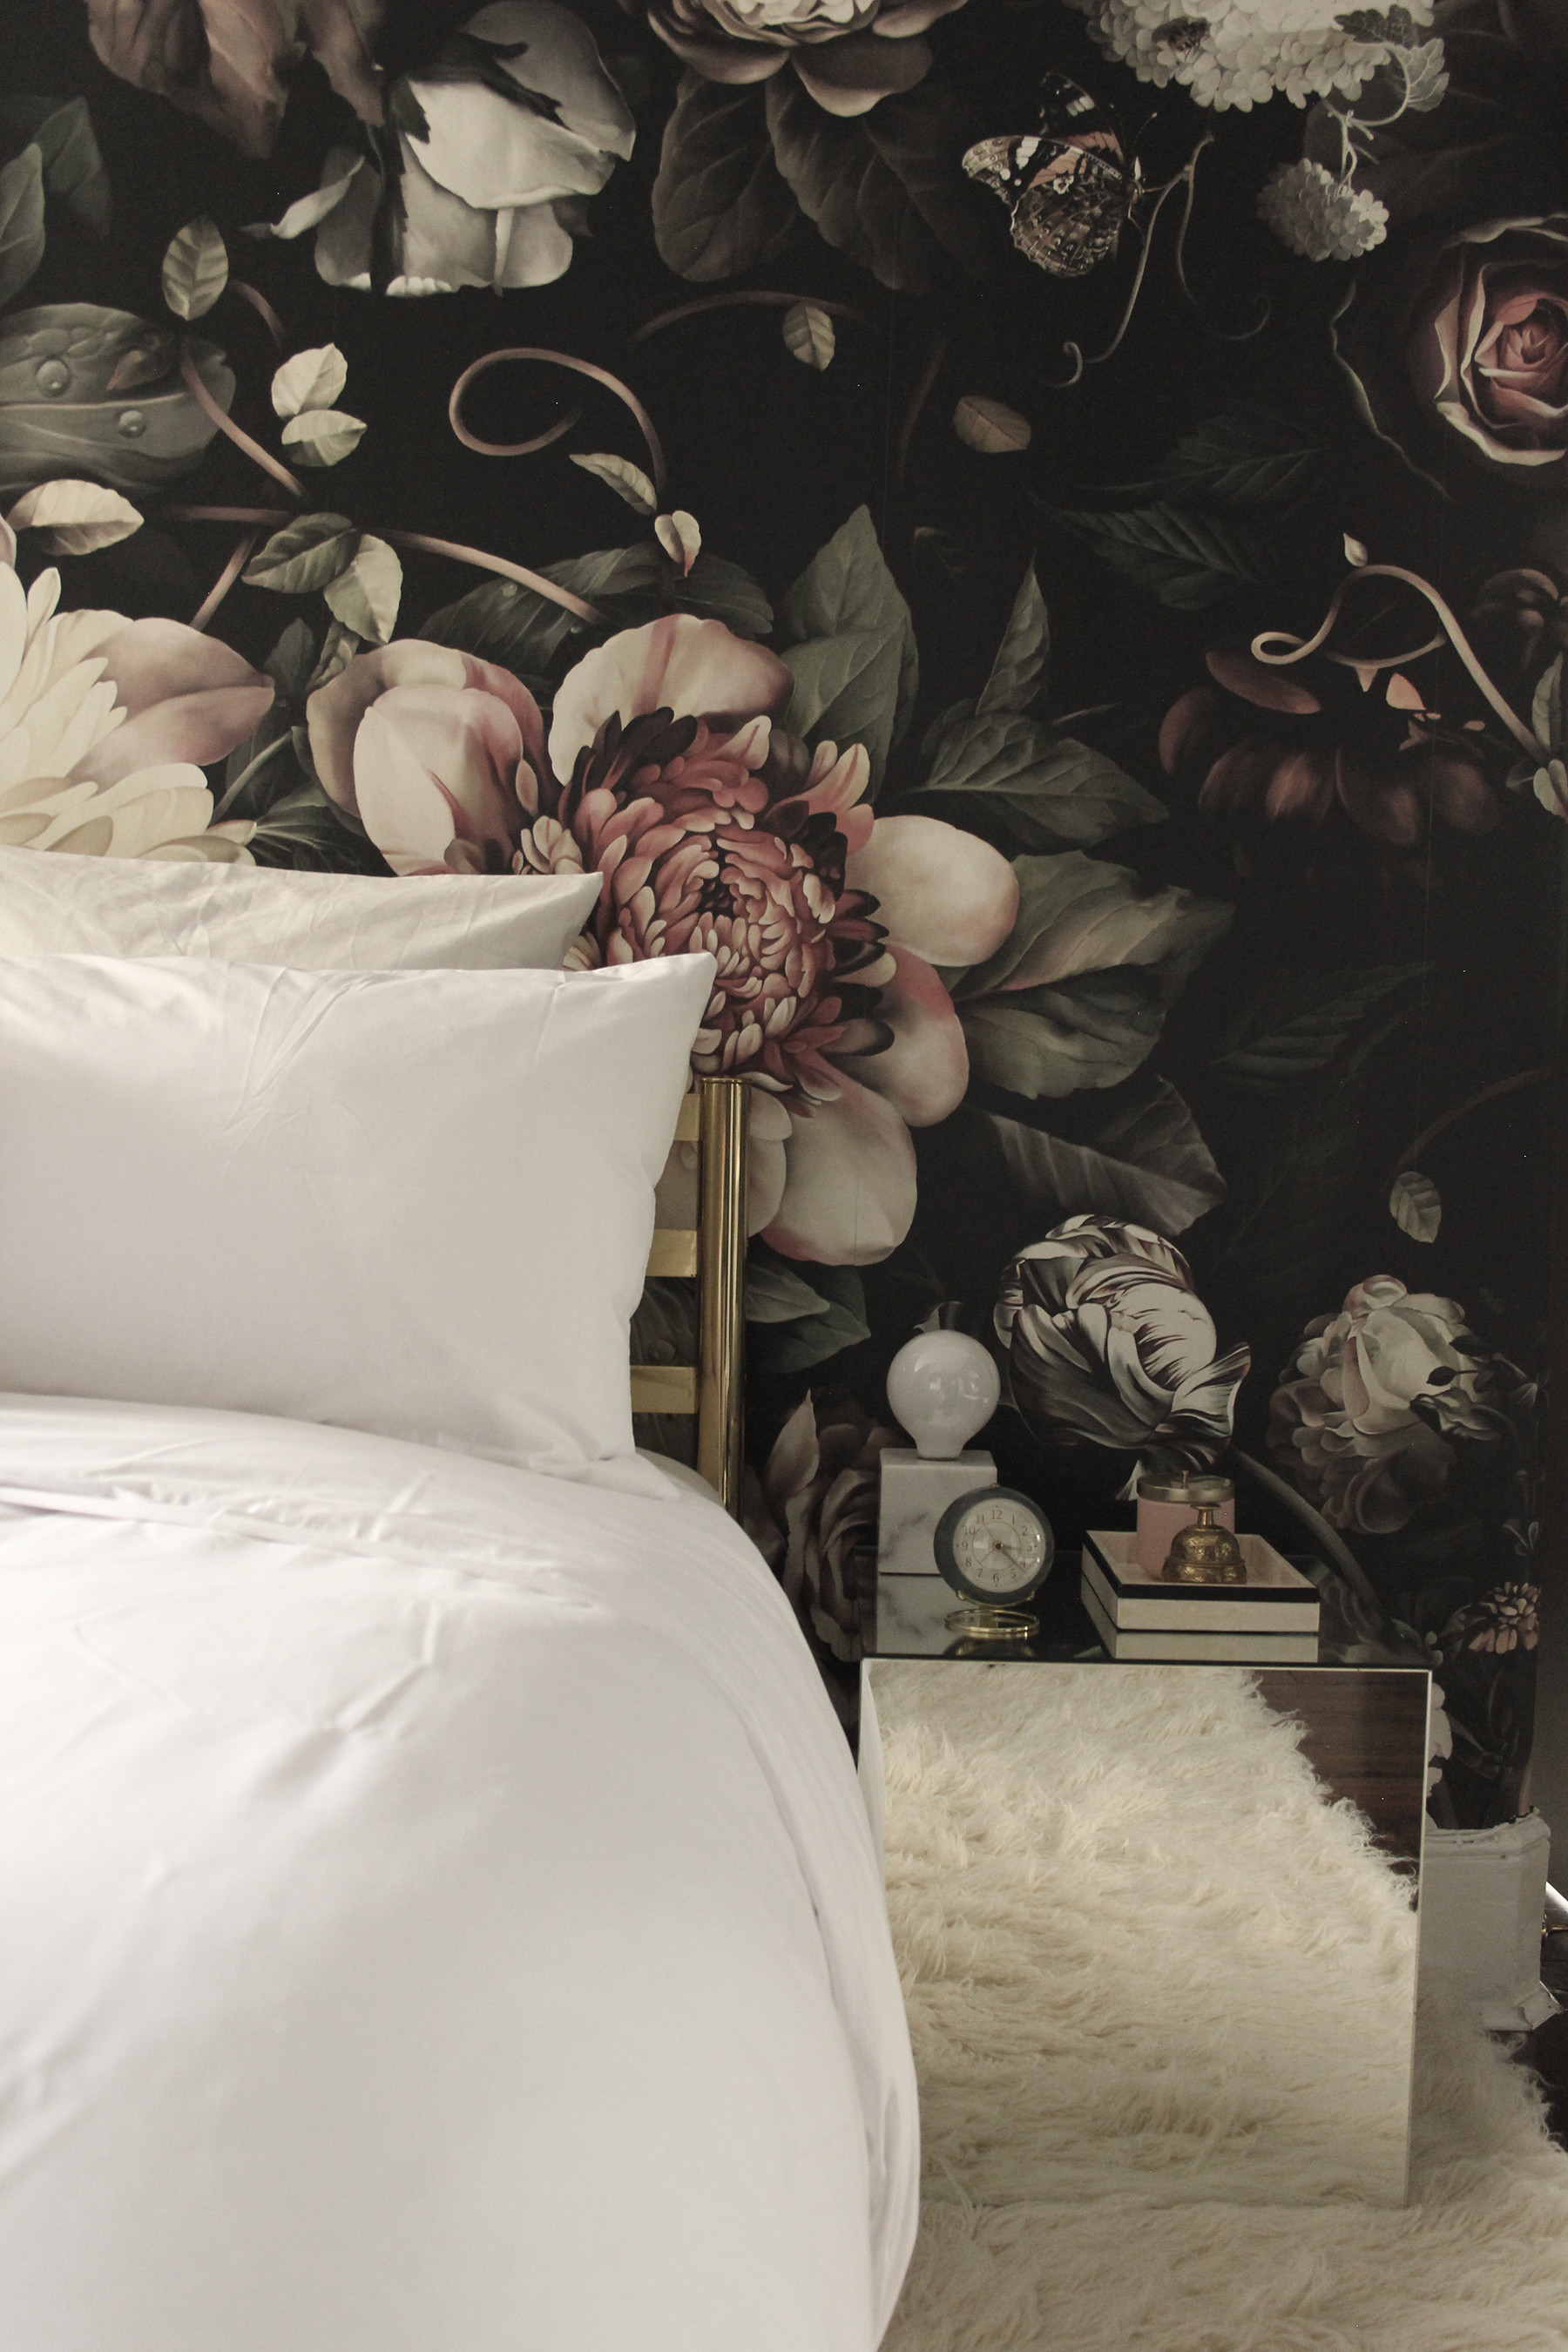 1800x2700 Preciously Me blog : One Room Challenge - Bedroom makeover reveal. Ellie  Cashman Dark Floral